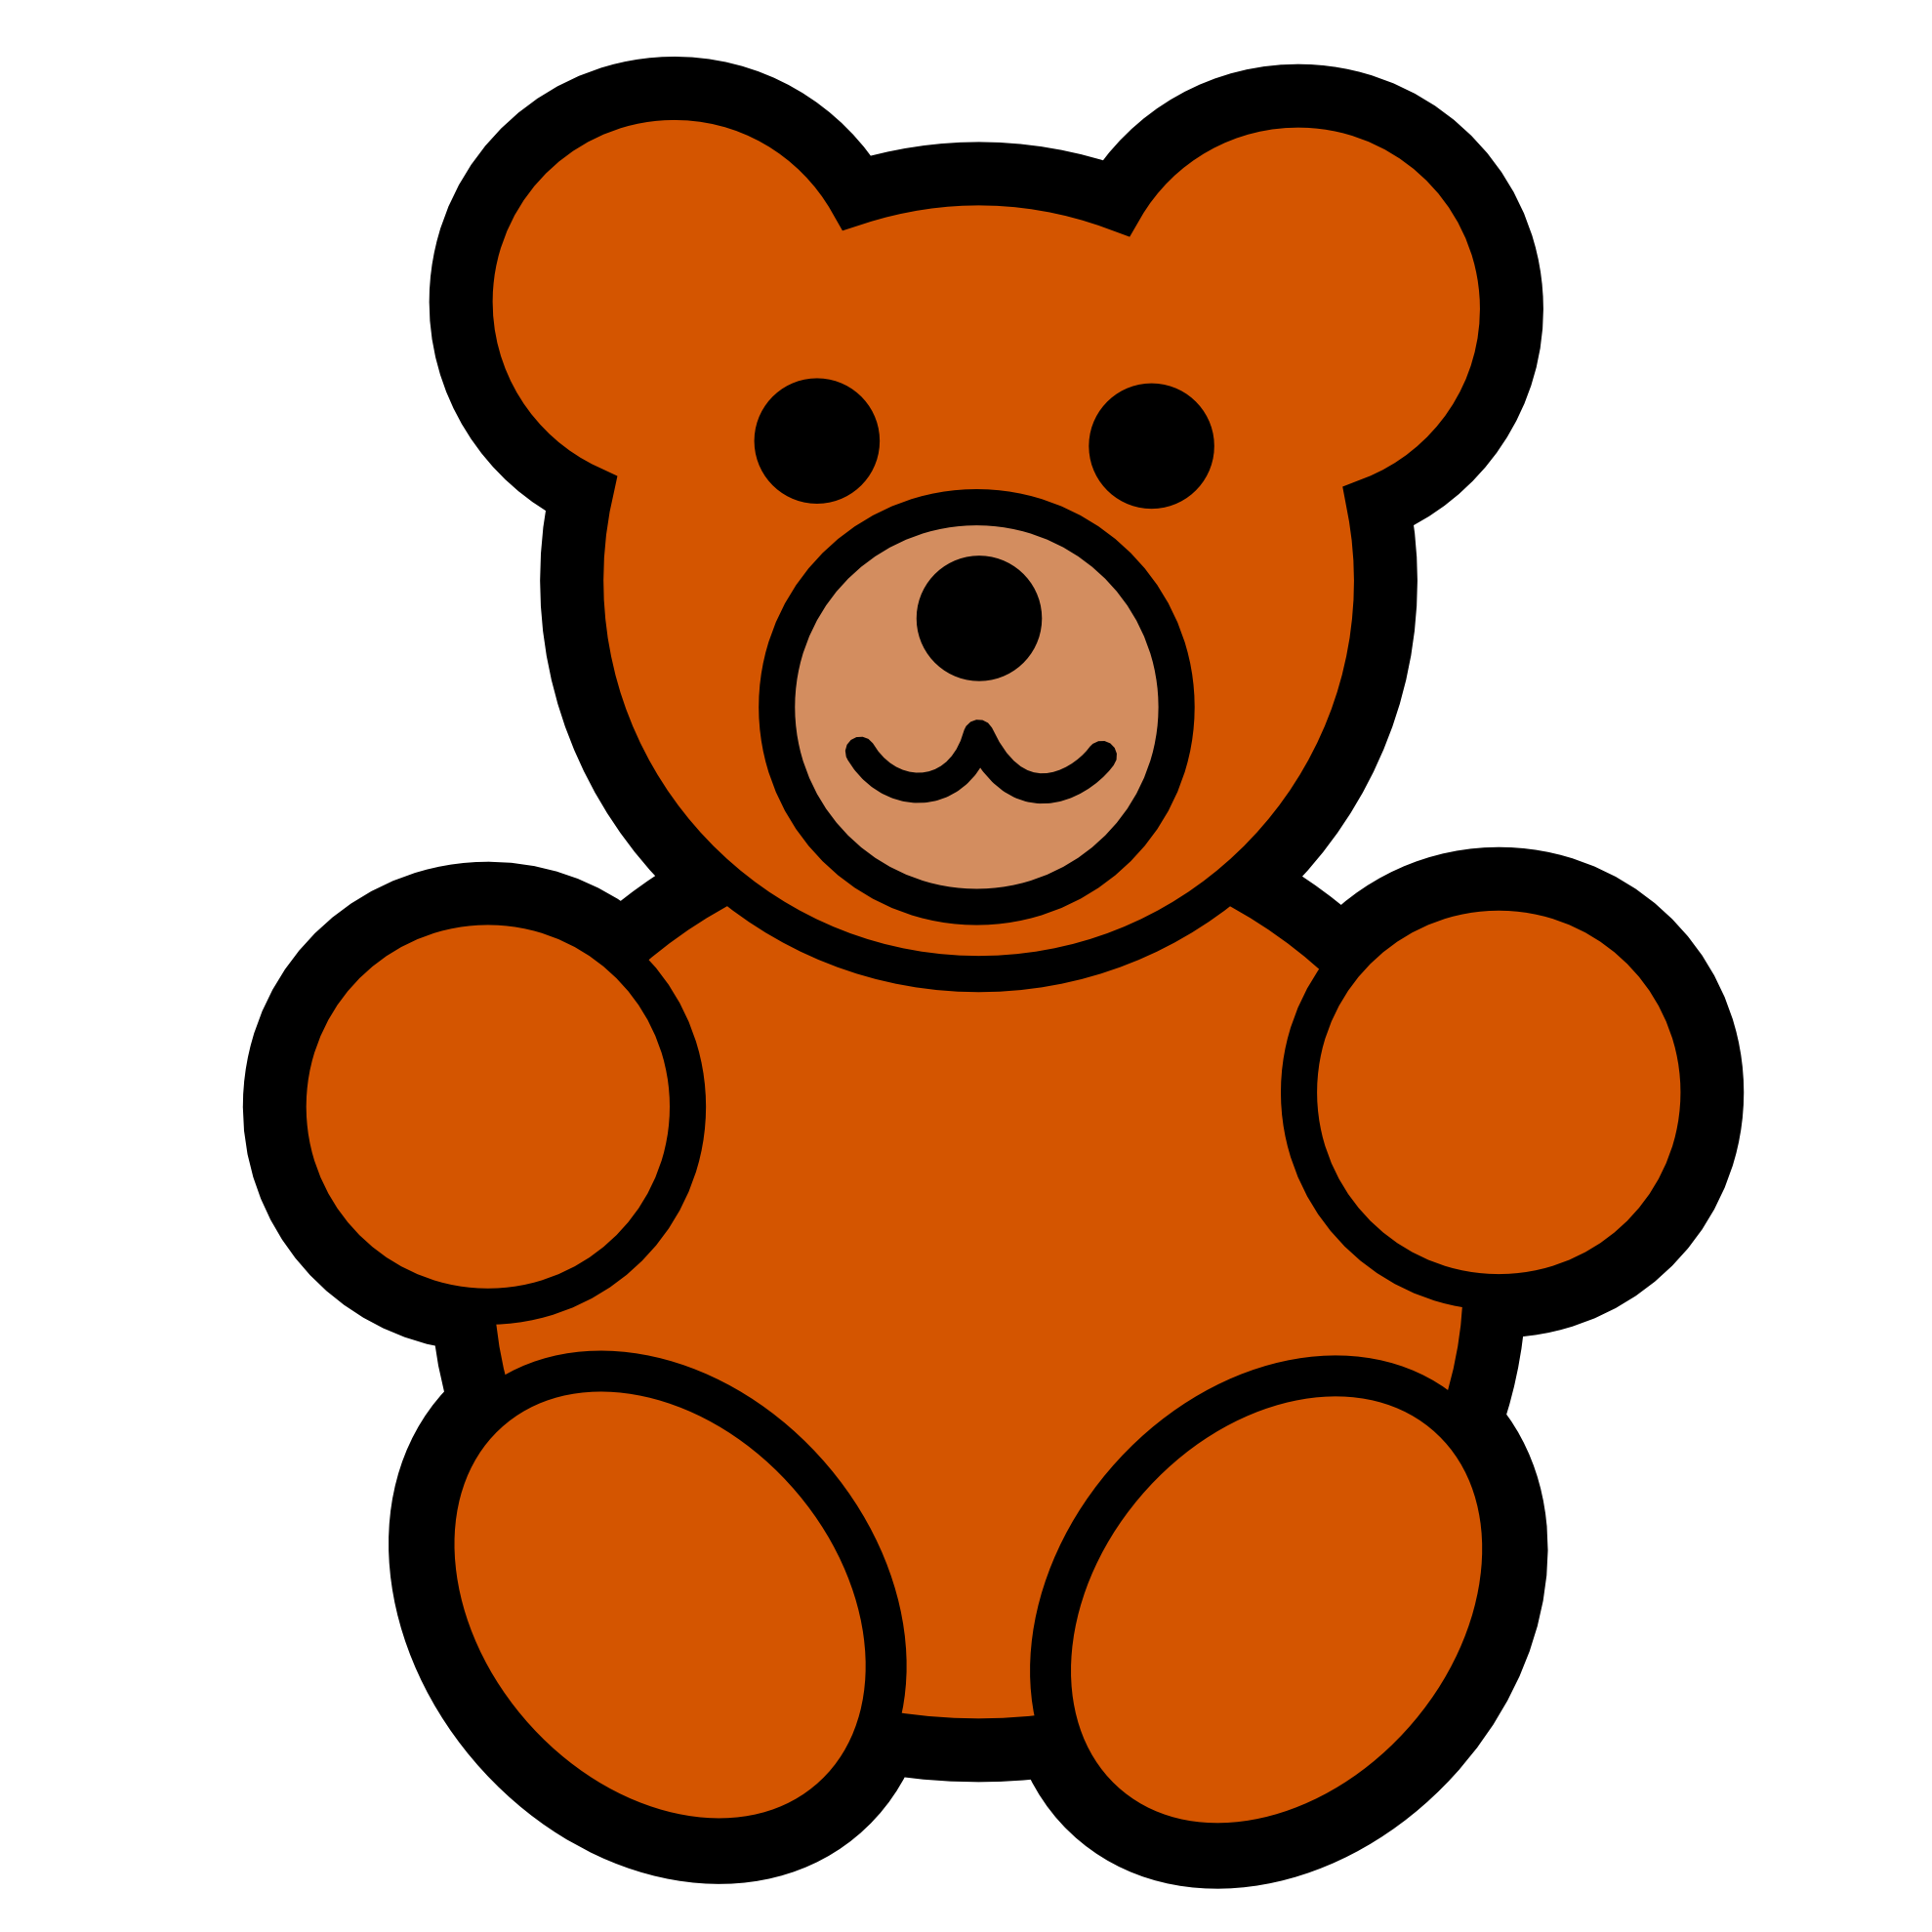 Christmas teddy clipart at. Bear clip art simple picture free library